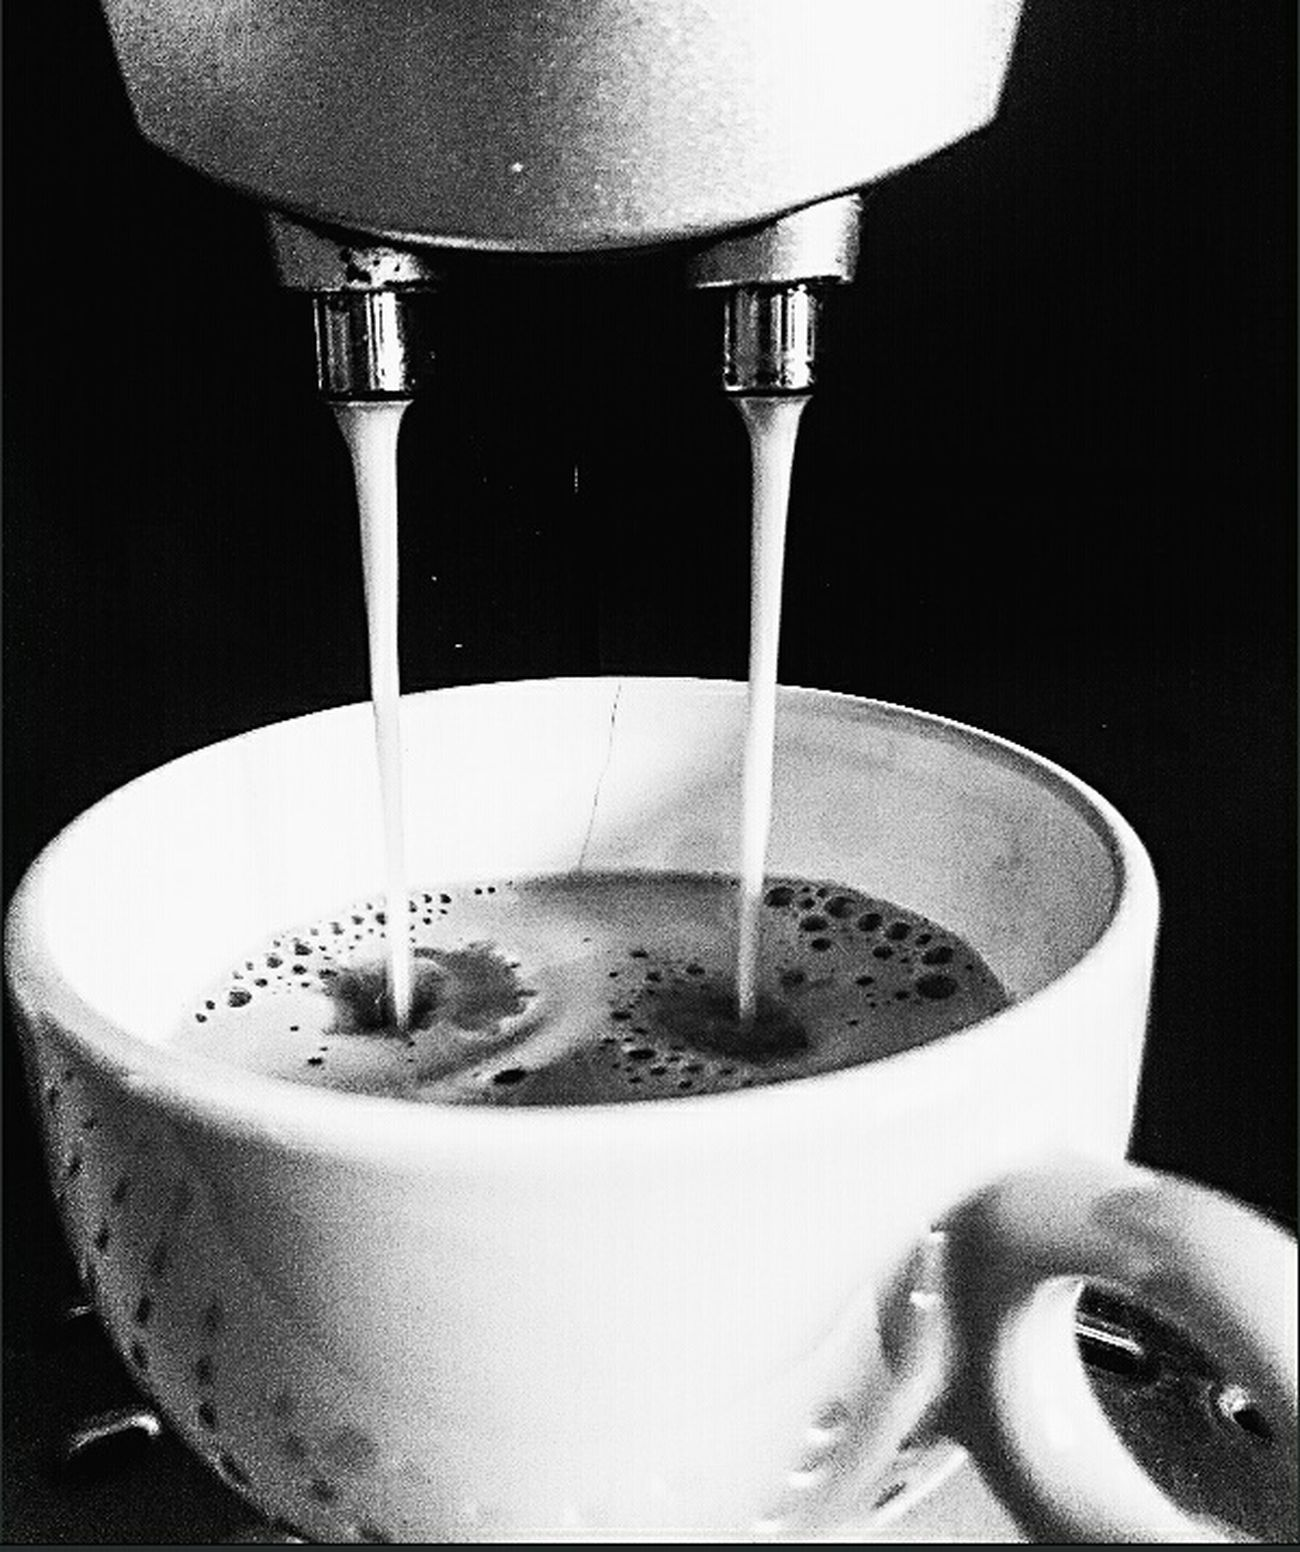 All you need is love and a cup of coffee ❤Coffee Cozy Coffee Time Sunday A Taste Of Life Relaxing EyeEm Hanging Out Drinking Coffee Blackandwhite Hotcoffee Tasty Feeling Good Blackandwhite Photography Wakeup☕